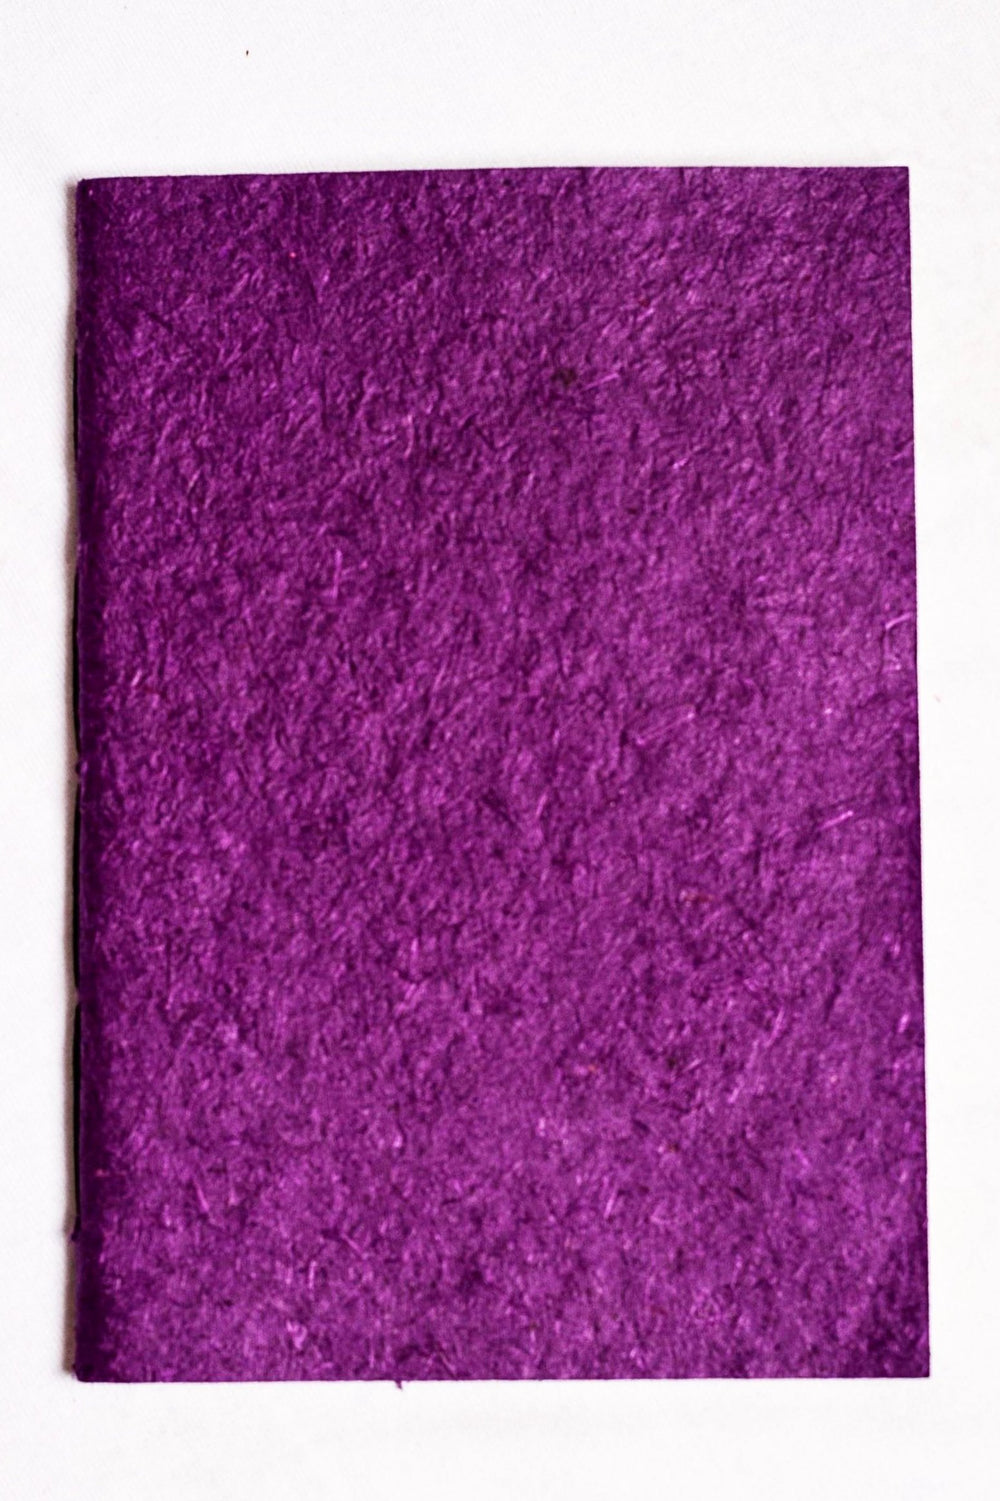 Sugarcane paper covered handmade paper notebook - purple